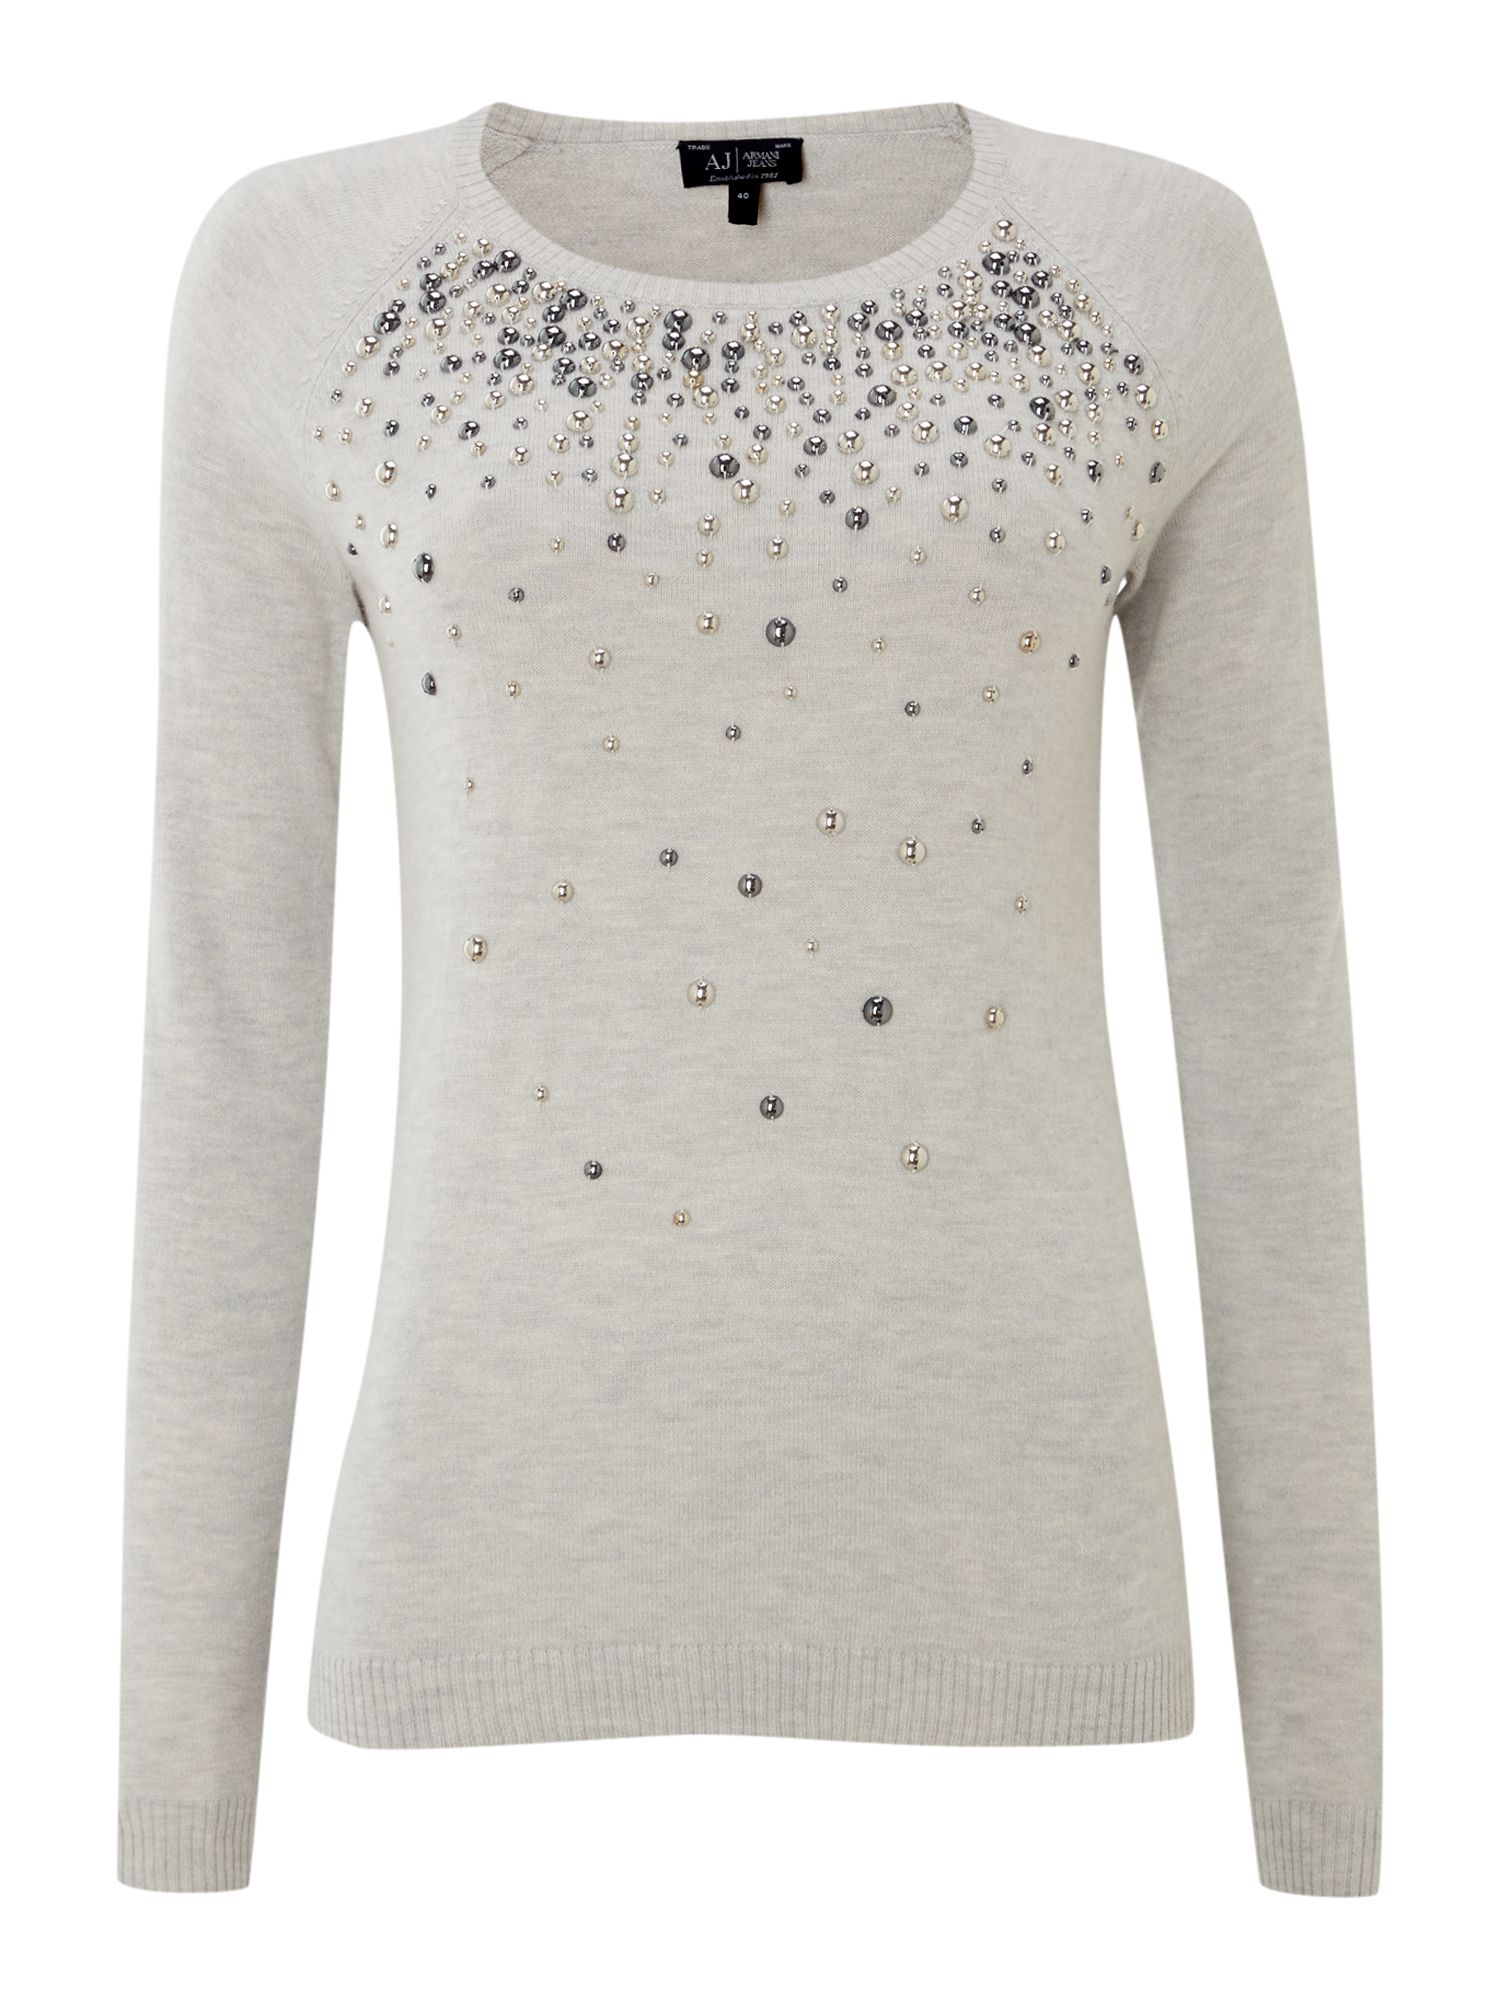 Long sleeve knit with all over studs